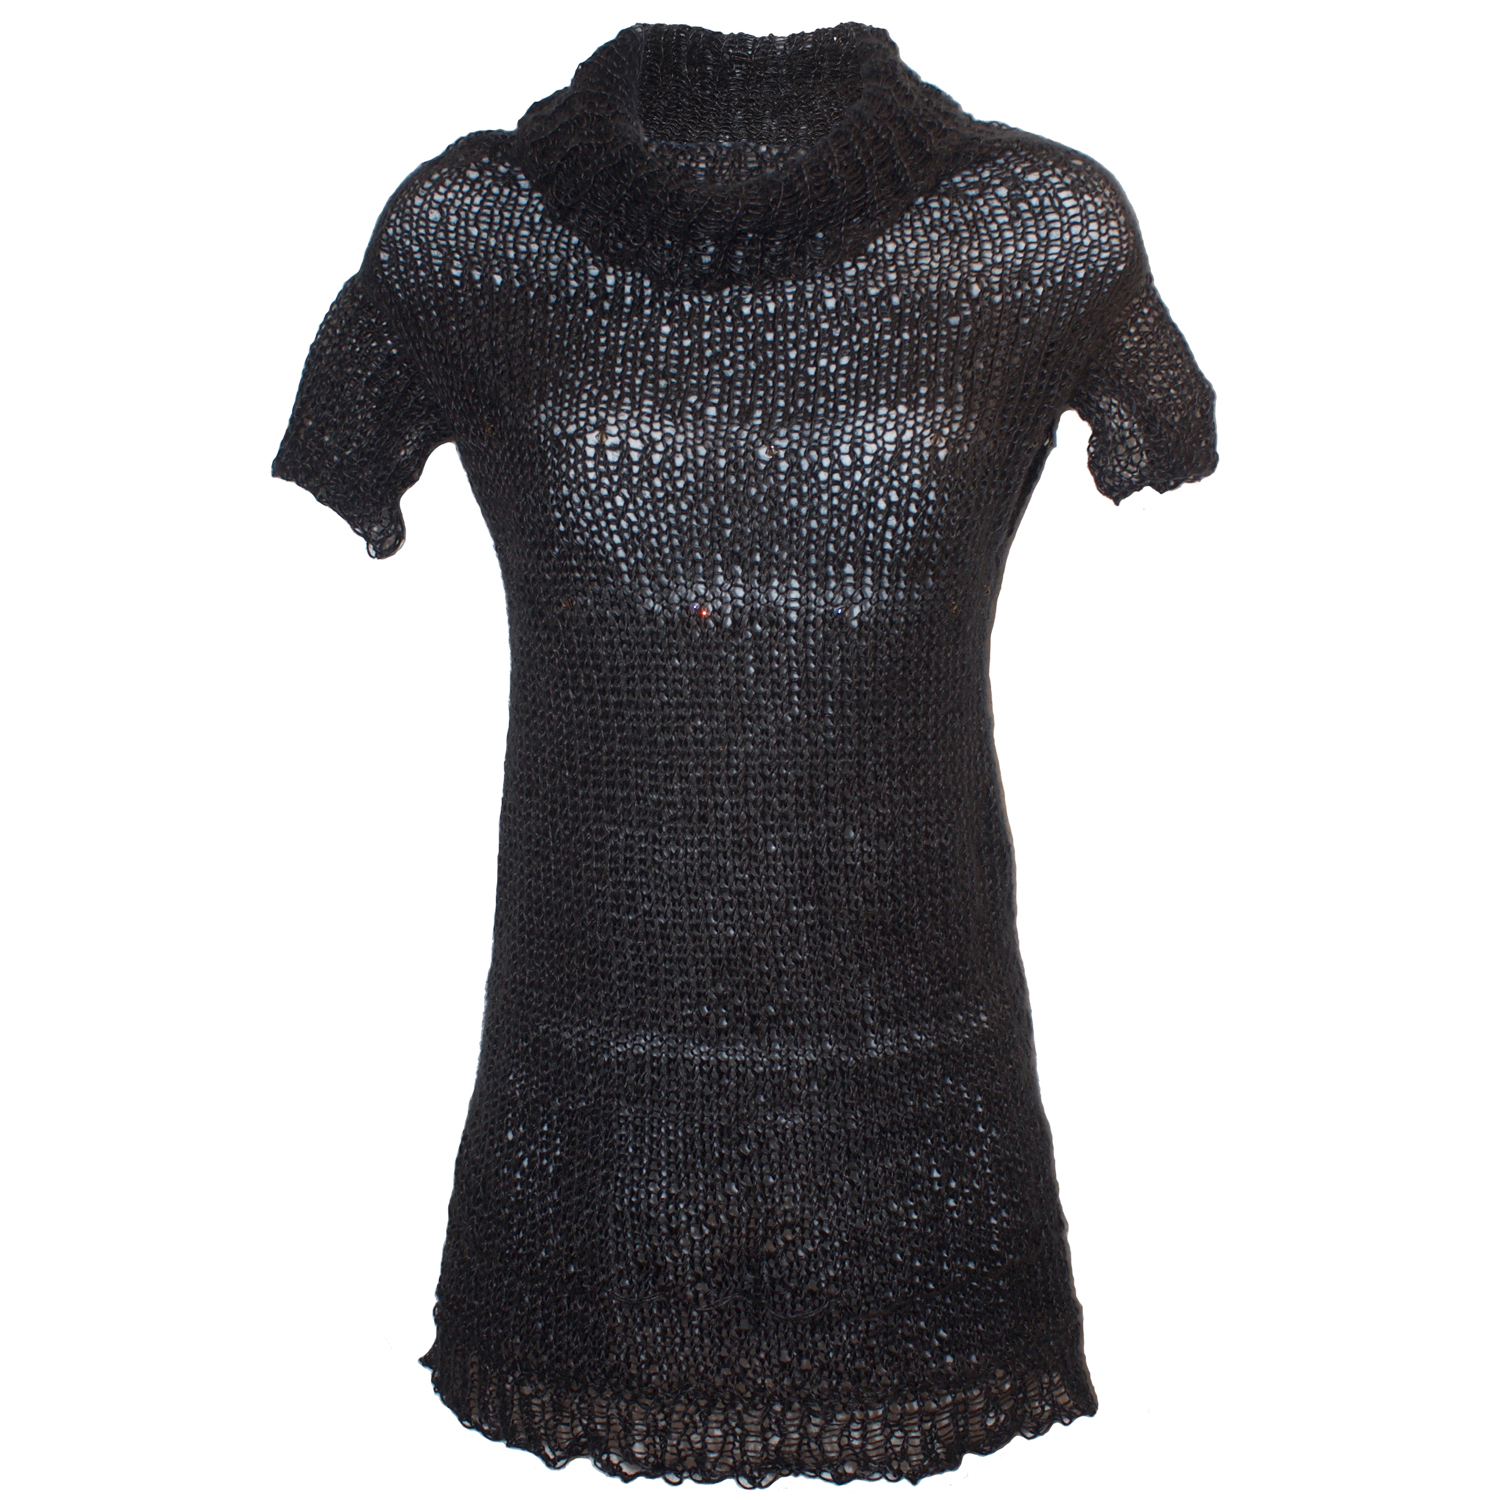 Black Open Knit Top with Swarovski Crystal Embellishment